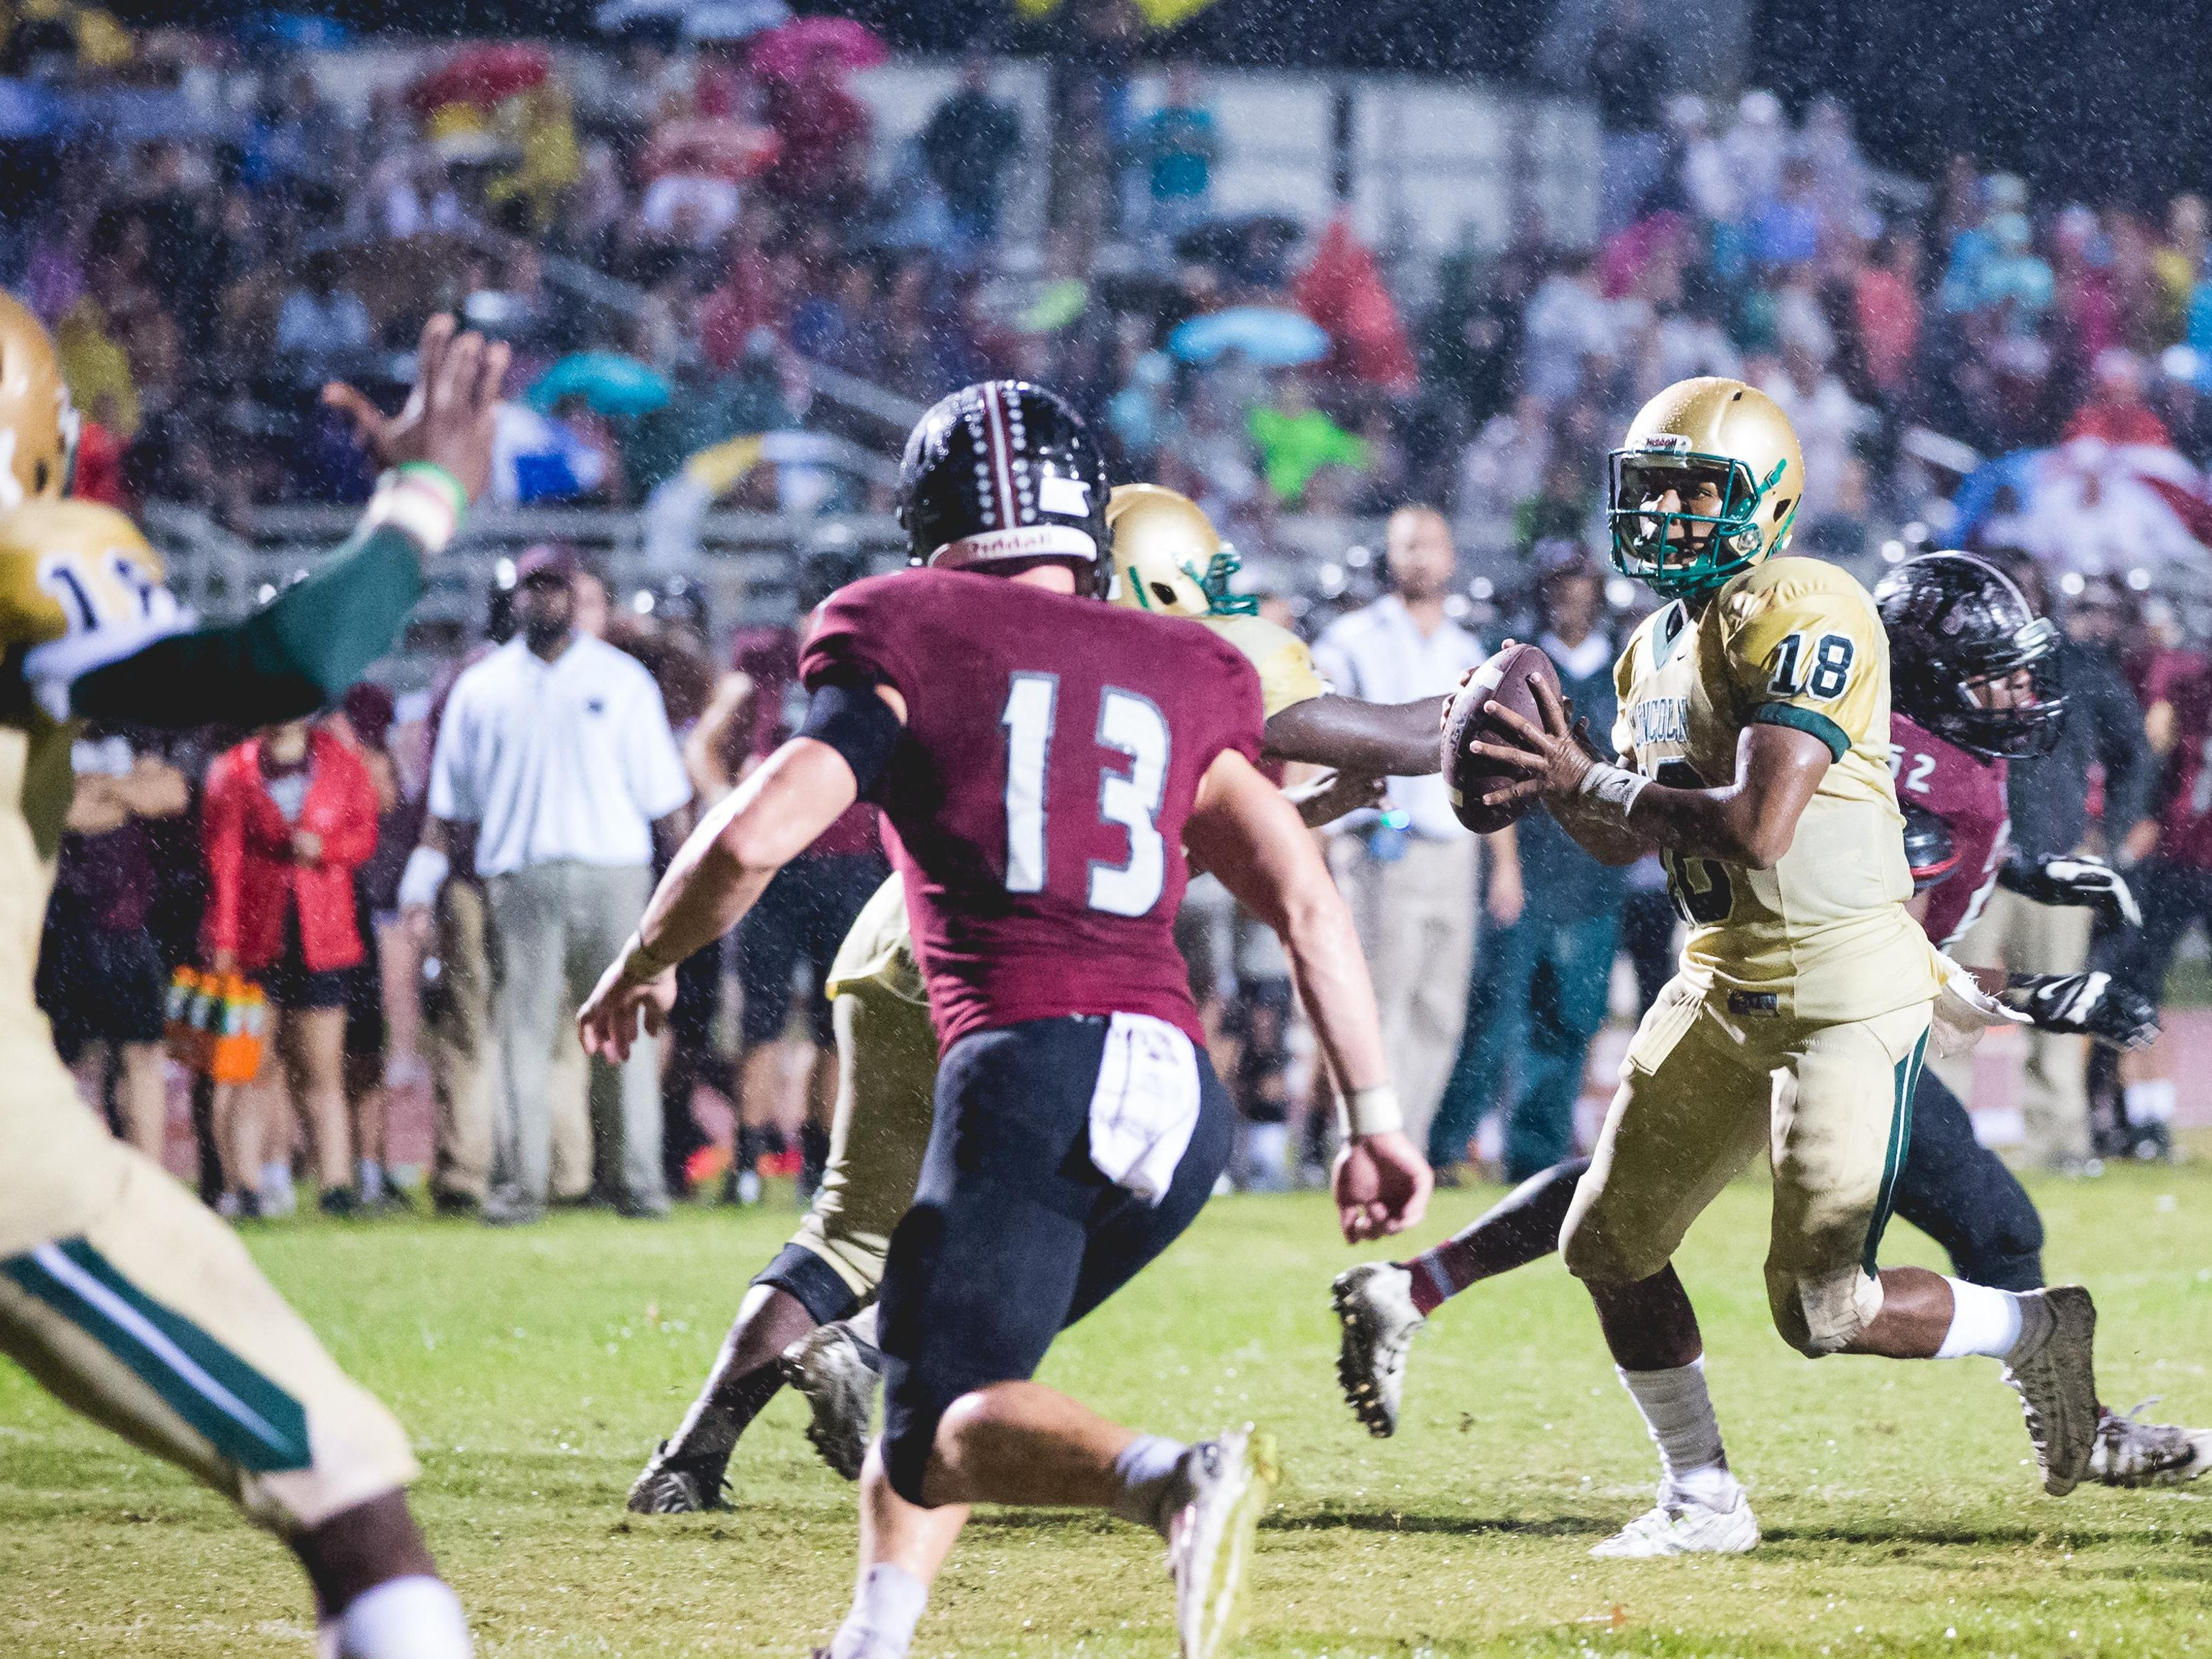 Lincoln quarterback Chris Brimm was masterful on a game-winning drive against Leon, while also leading the Trojans past Chiles and to a District 2-7A title during Monday's three-way tiebreaker.